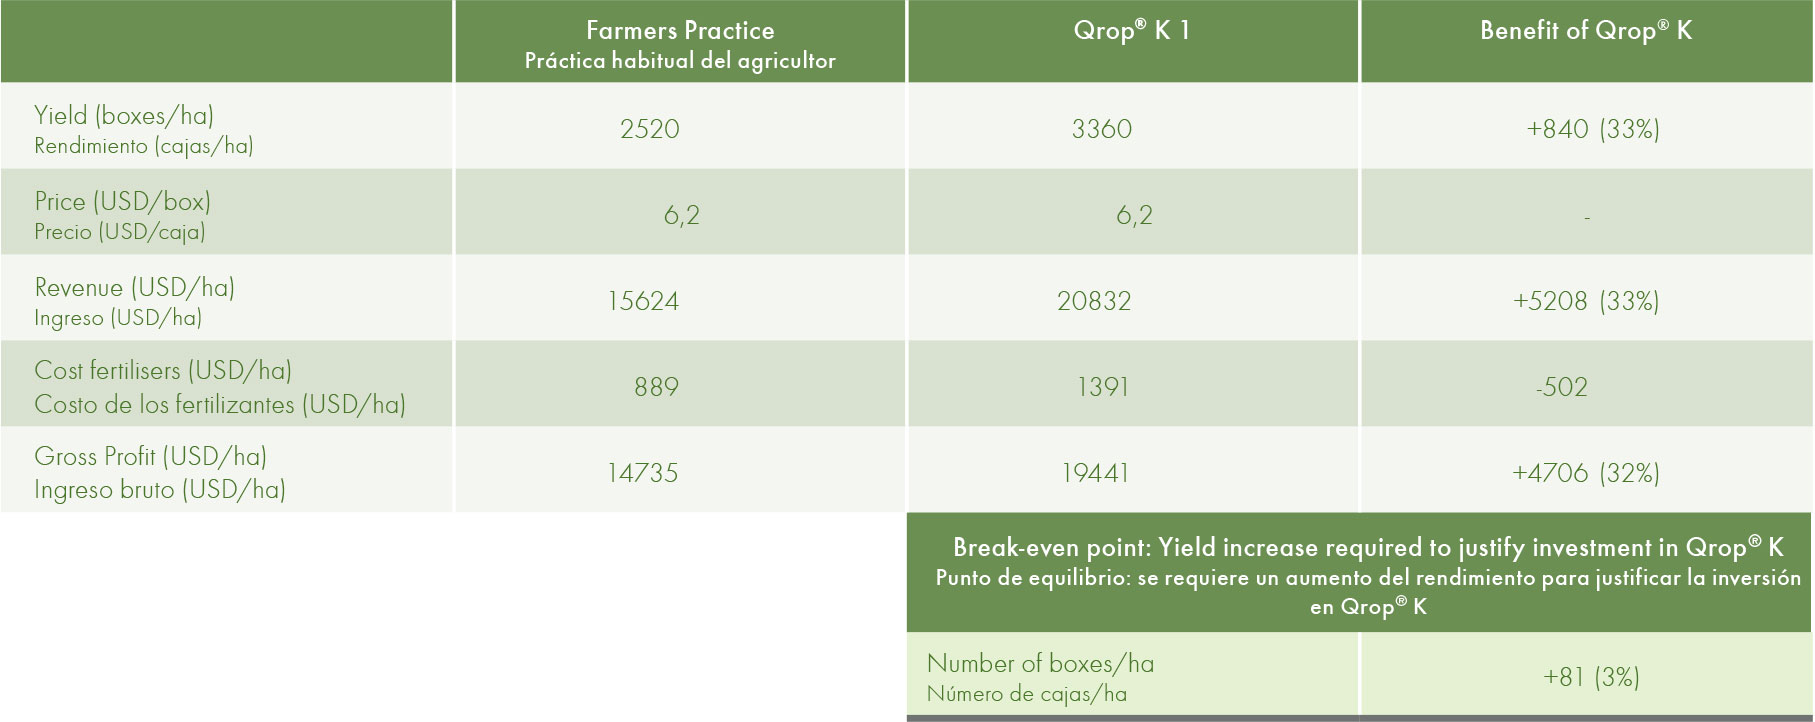 Financial analyses of the benefit of application of a Qrop K- based fertiliser programme.